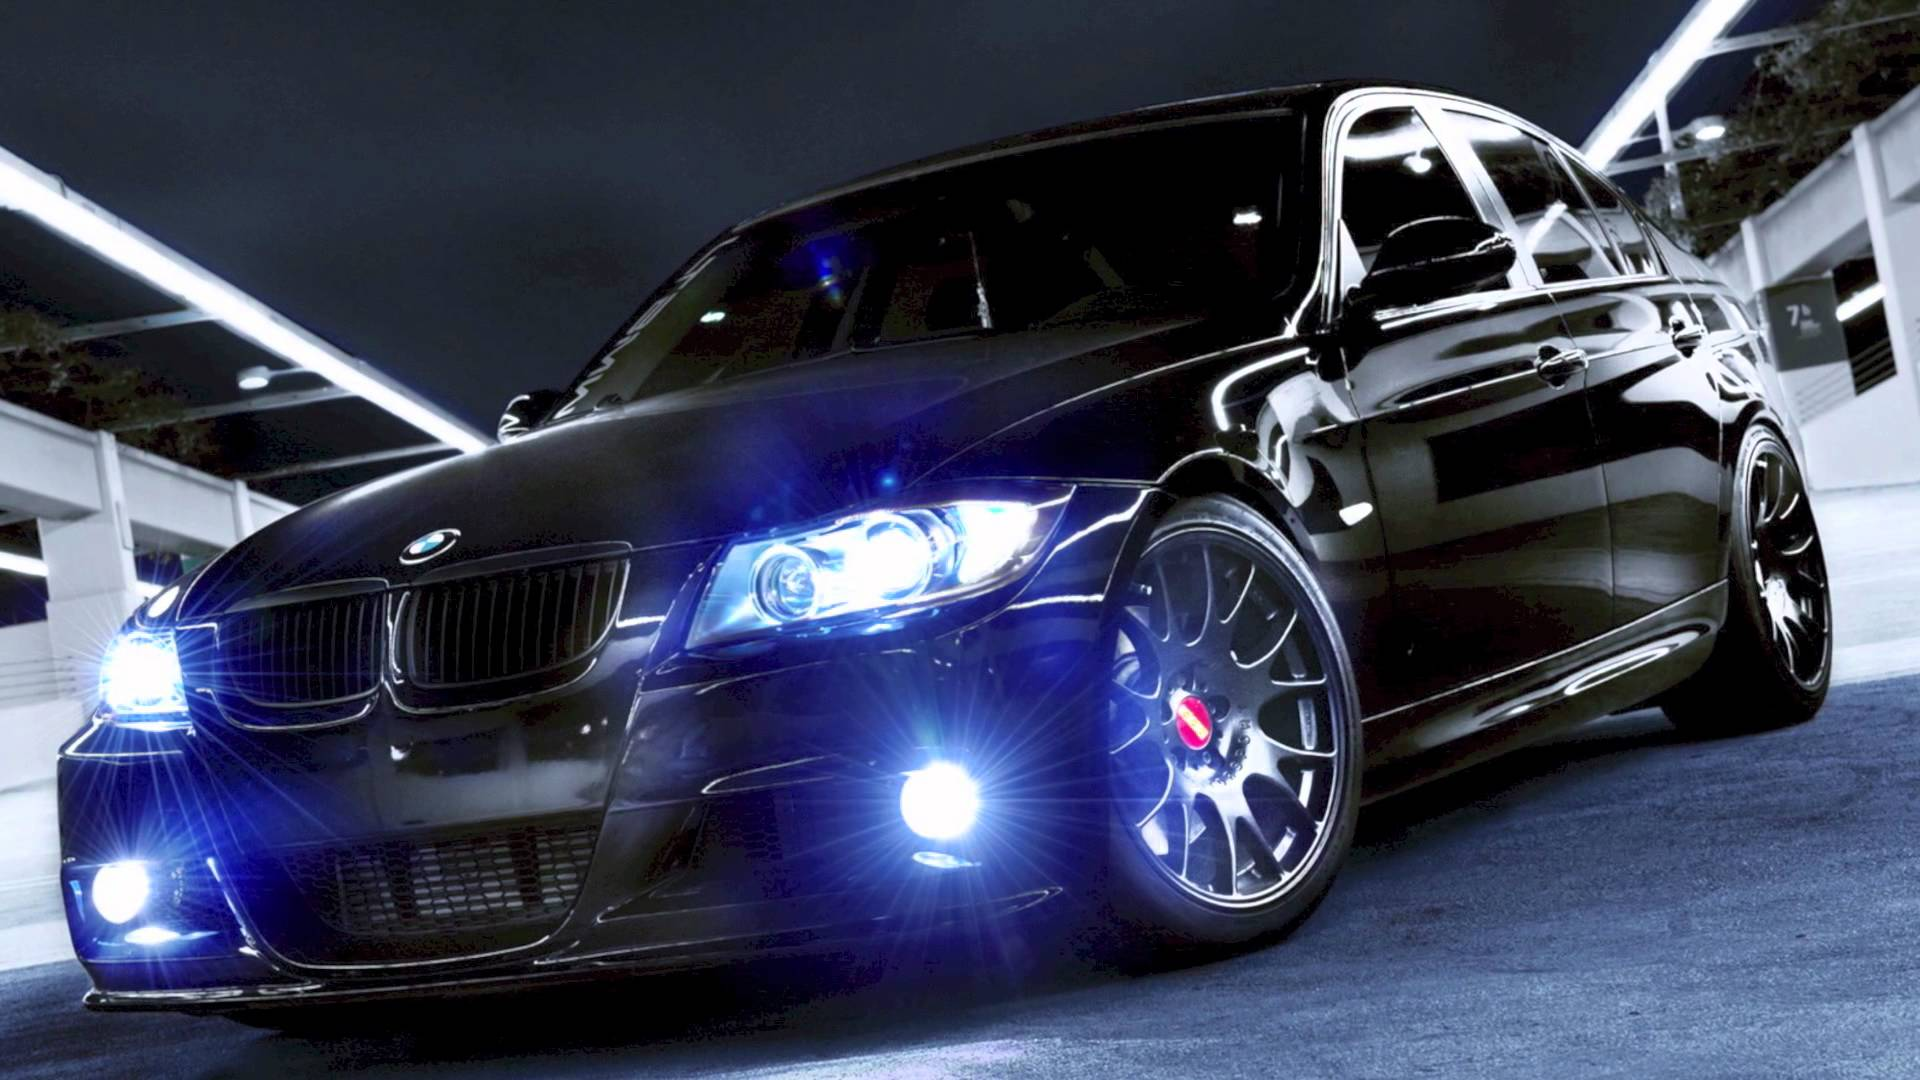 Hid Xenon Headlight Kits